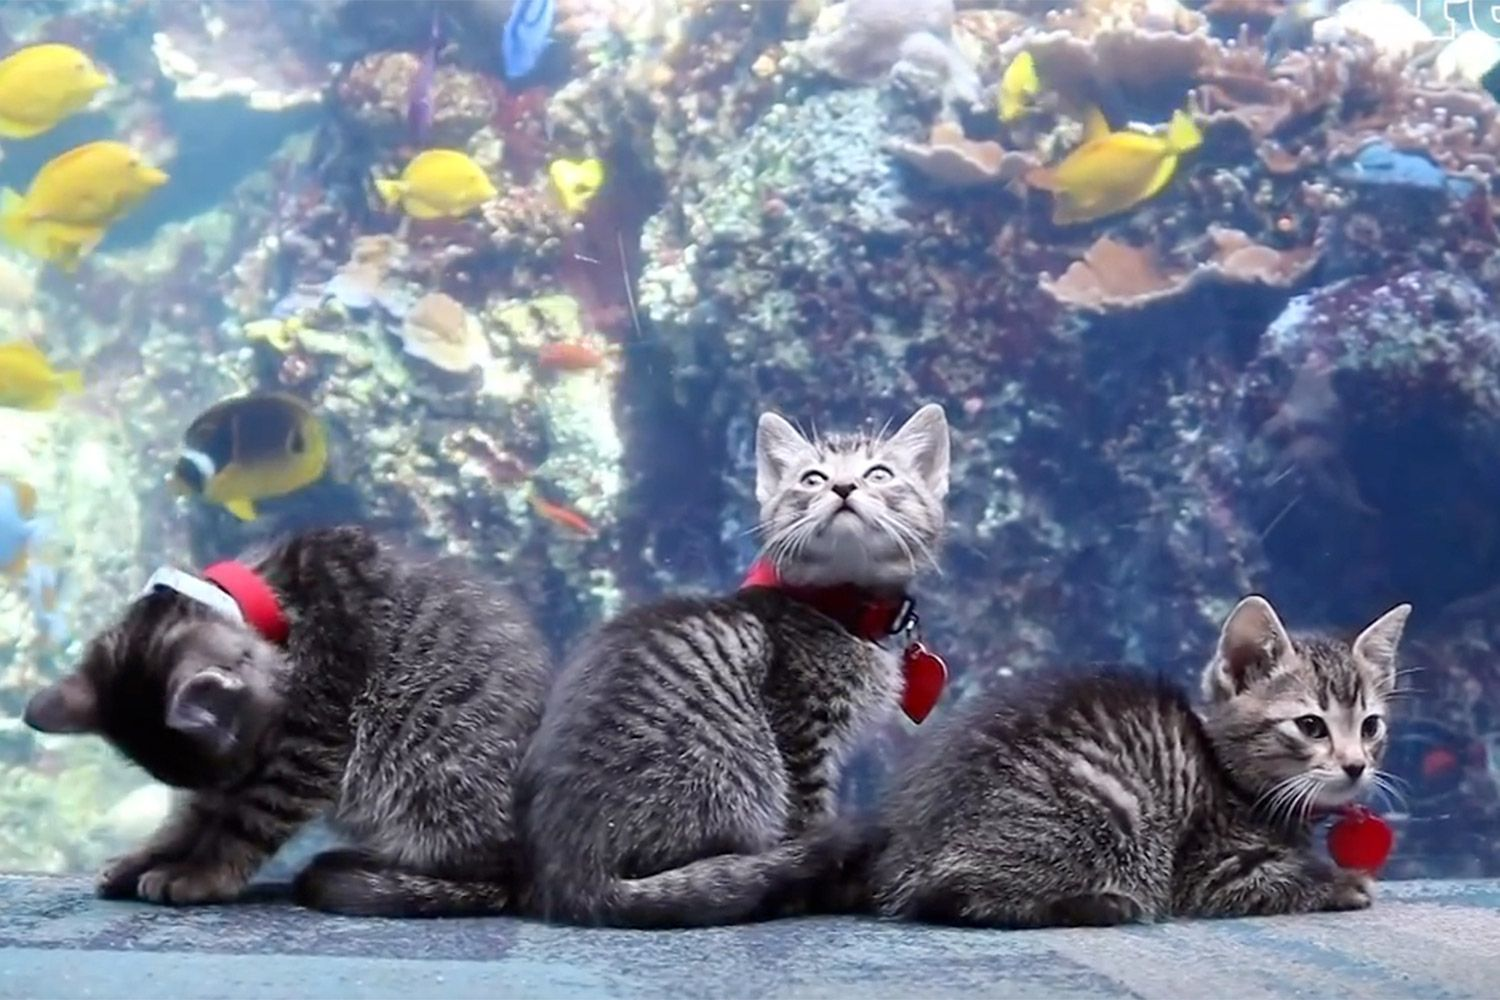 Adorable Litter Of Kittens Go On Field Trip To Georgia Aquarium While It S Closed To The Public In 2020 Georgia Aquarium Kittens Animals